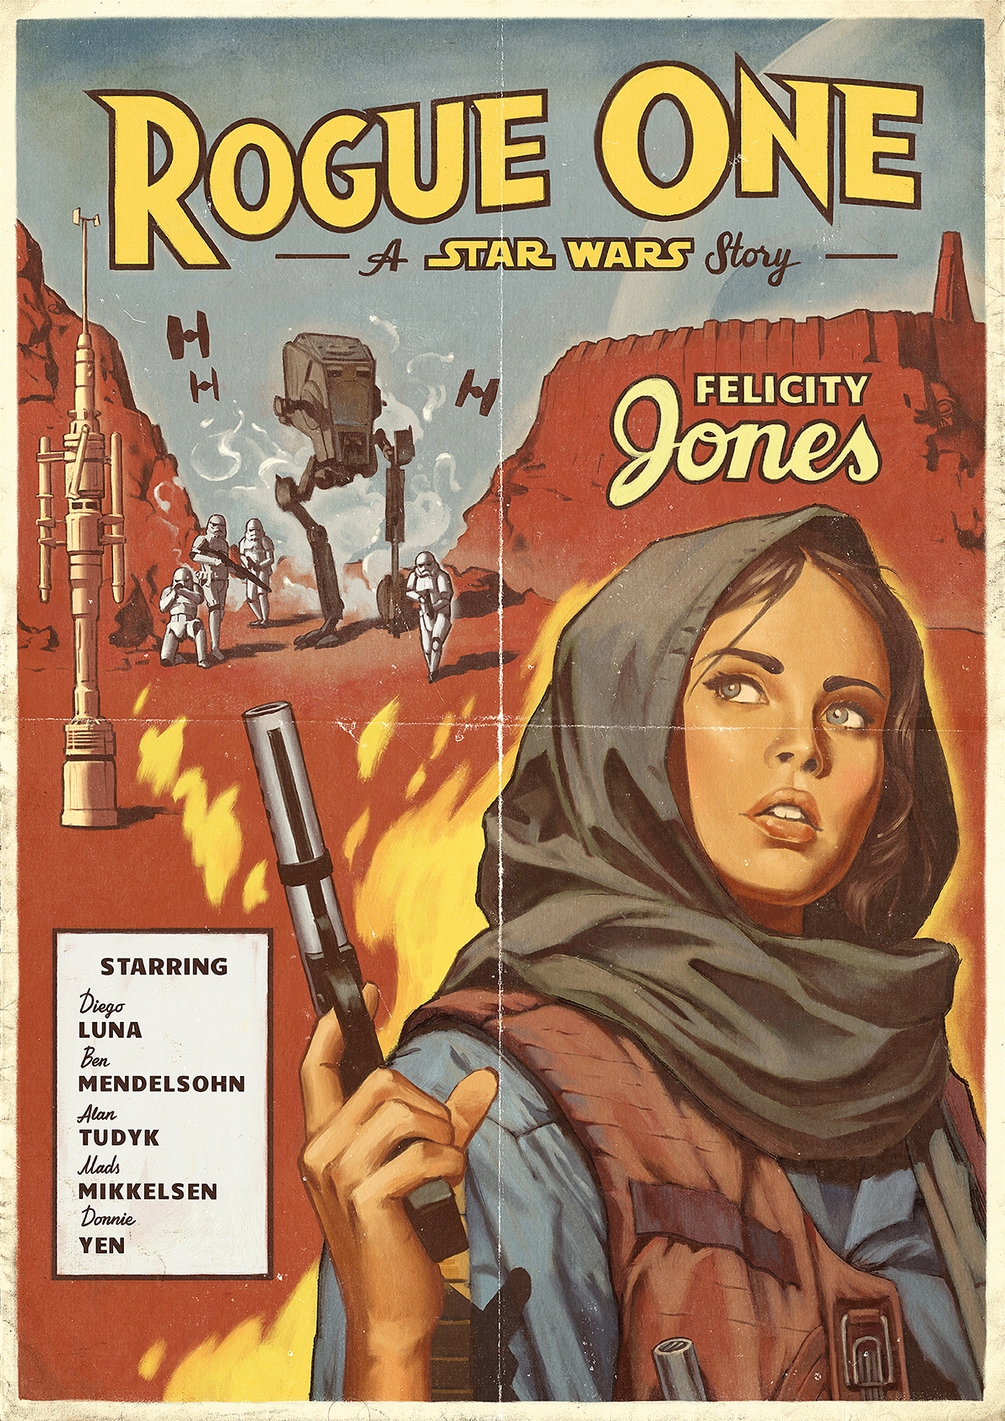 Rogue One Vintage Poster by Alexey Kot